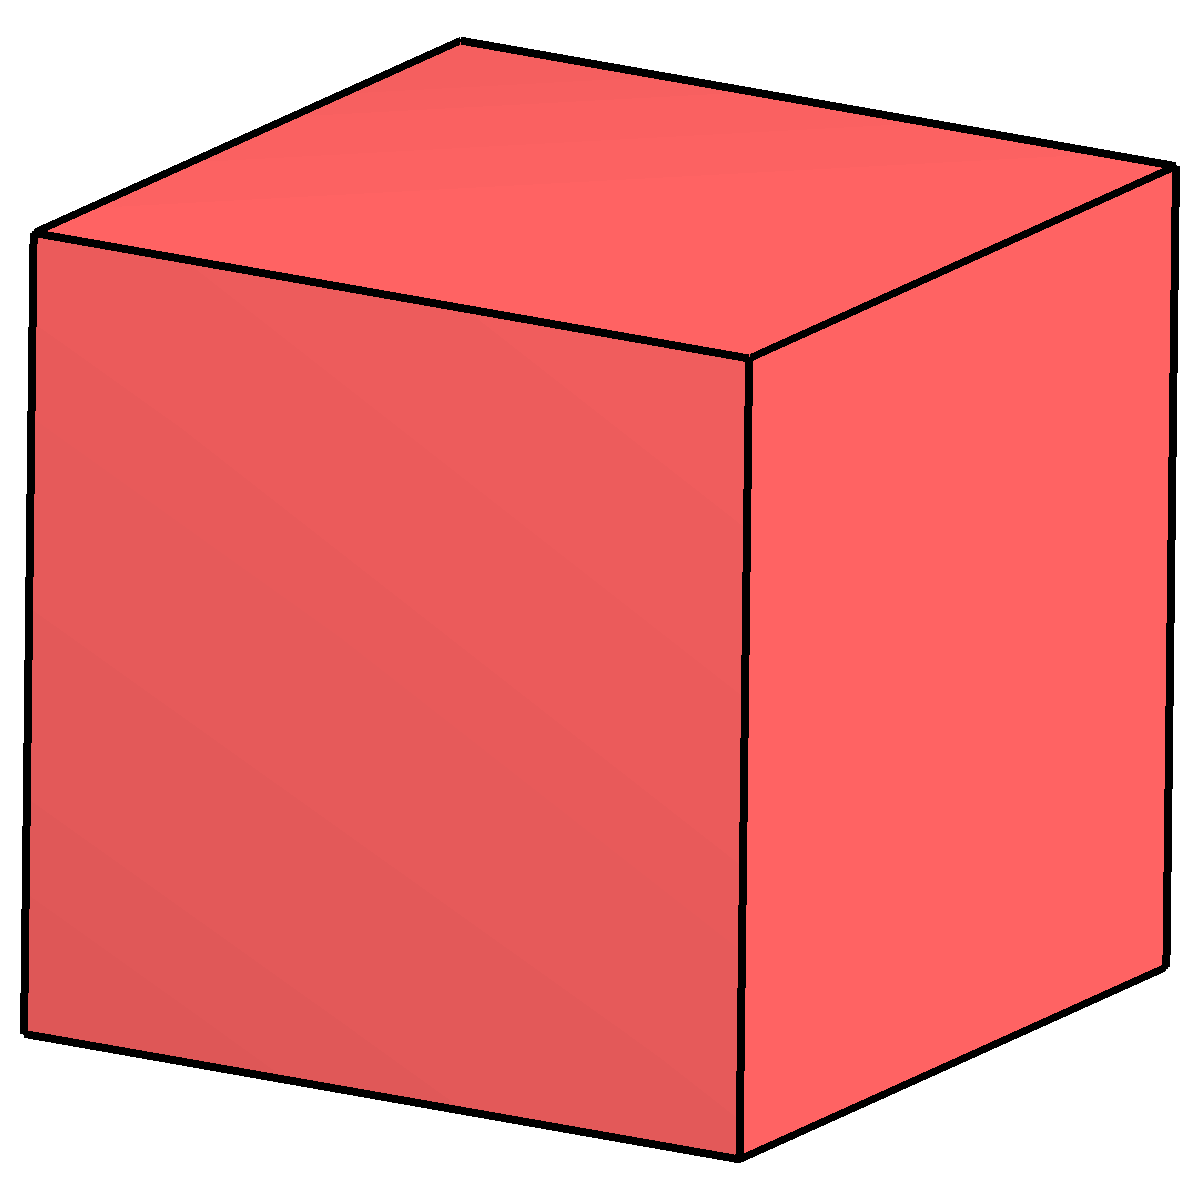 Cube Clipart Solid Cube Solid Transparent Free For